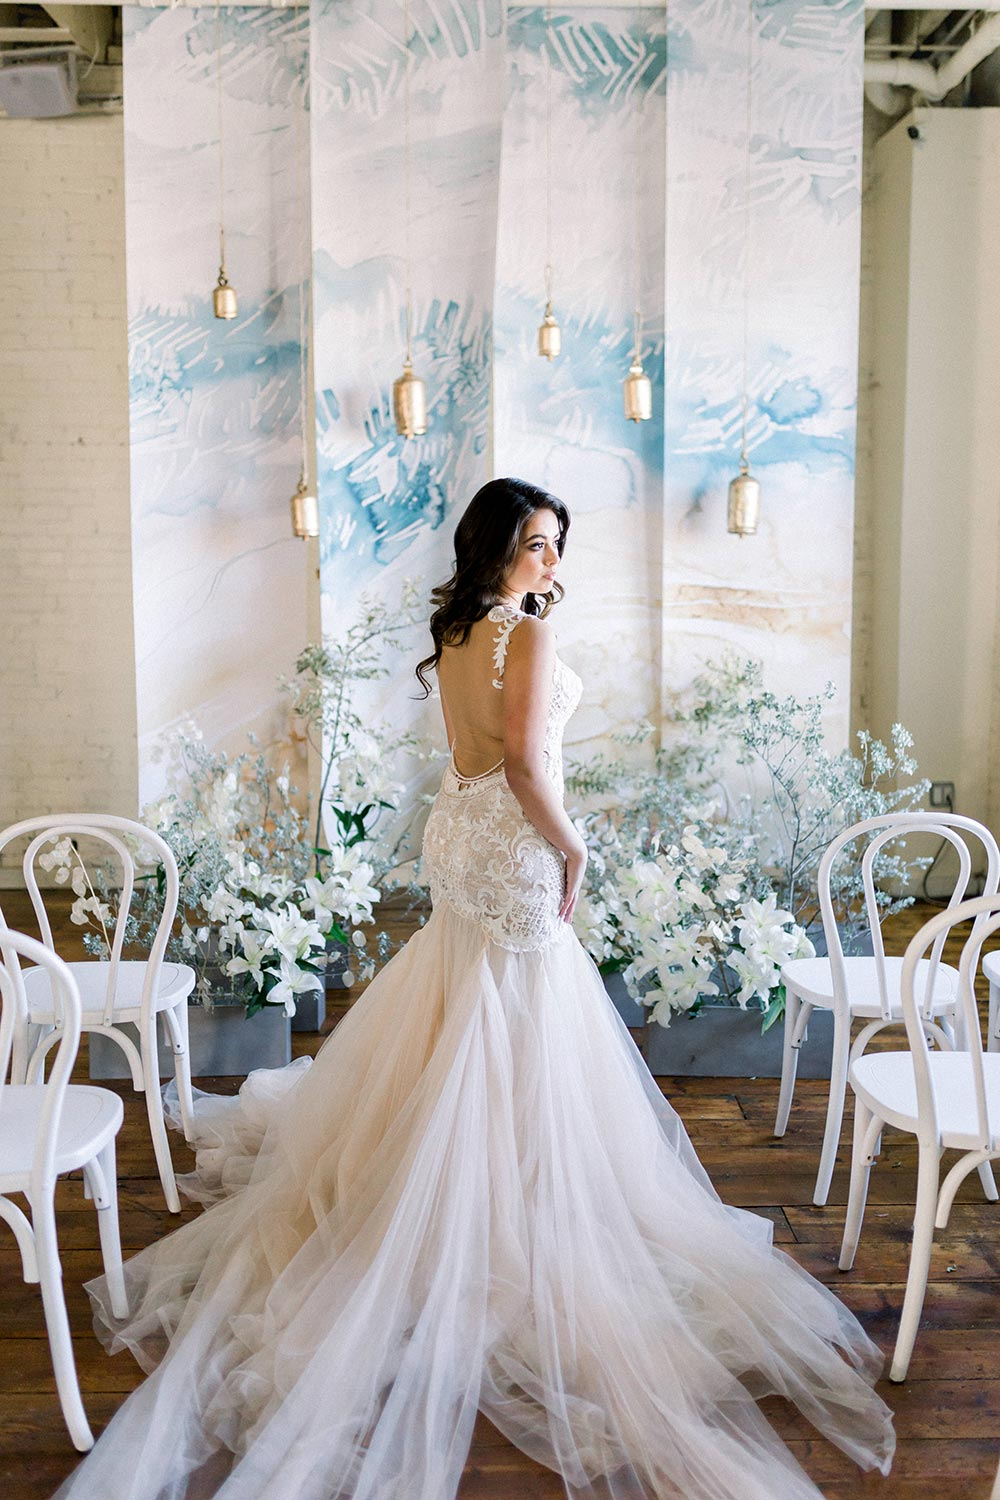 watercolor mural ceremony backdrop with wind chimes and bride in mermaid wedding dress